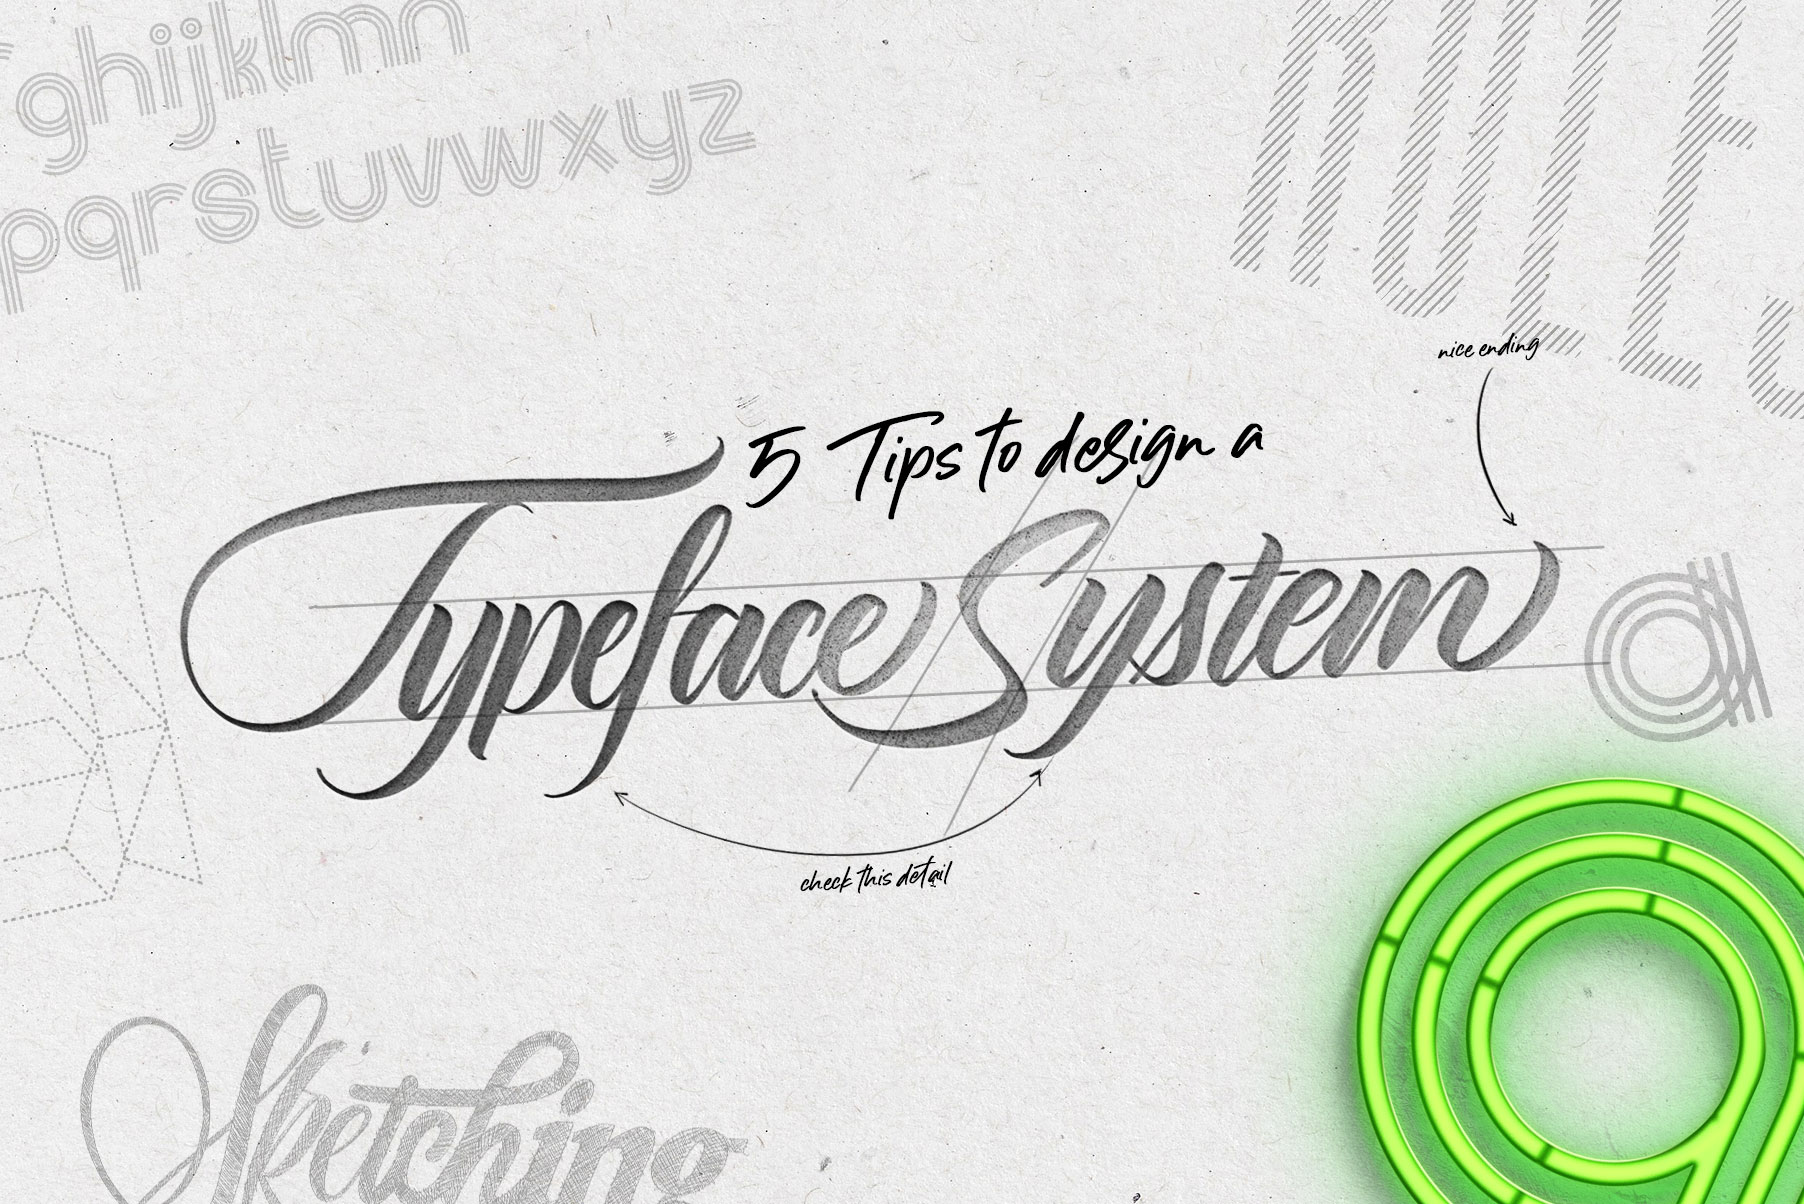 How to design a typeface system by creative director & letterer Daniel Hosaya